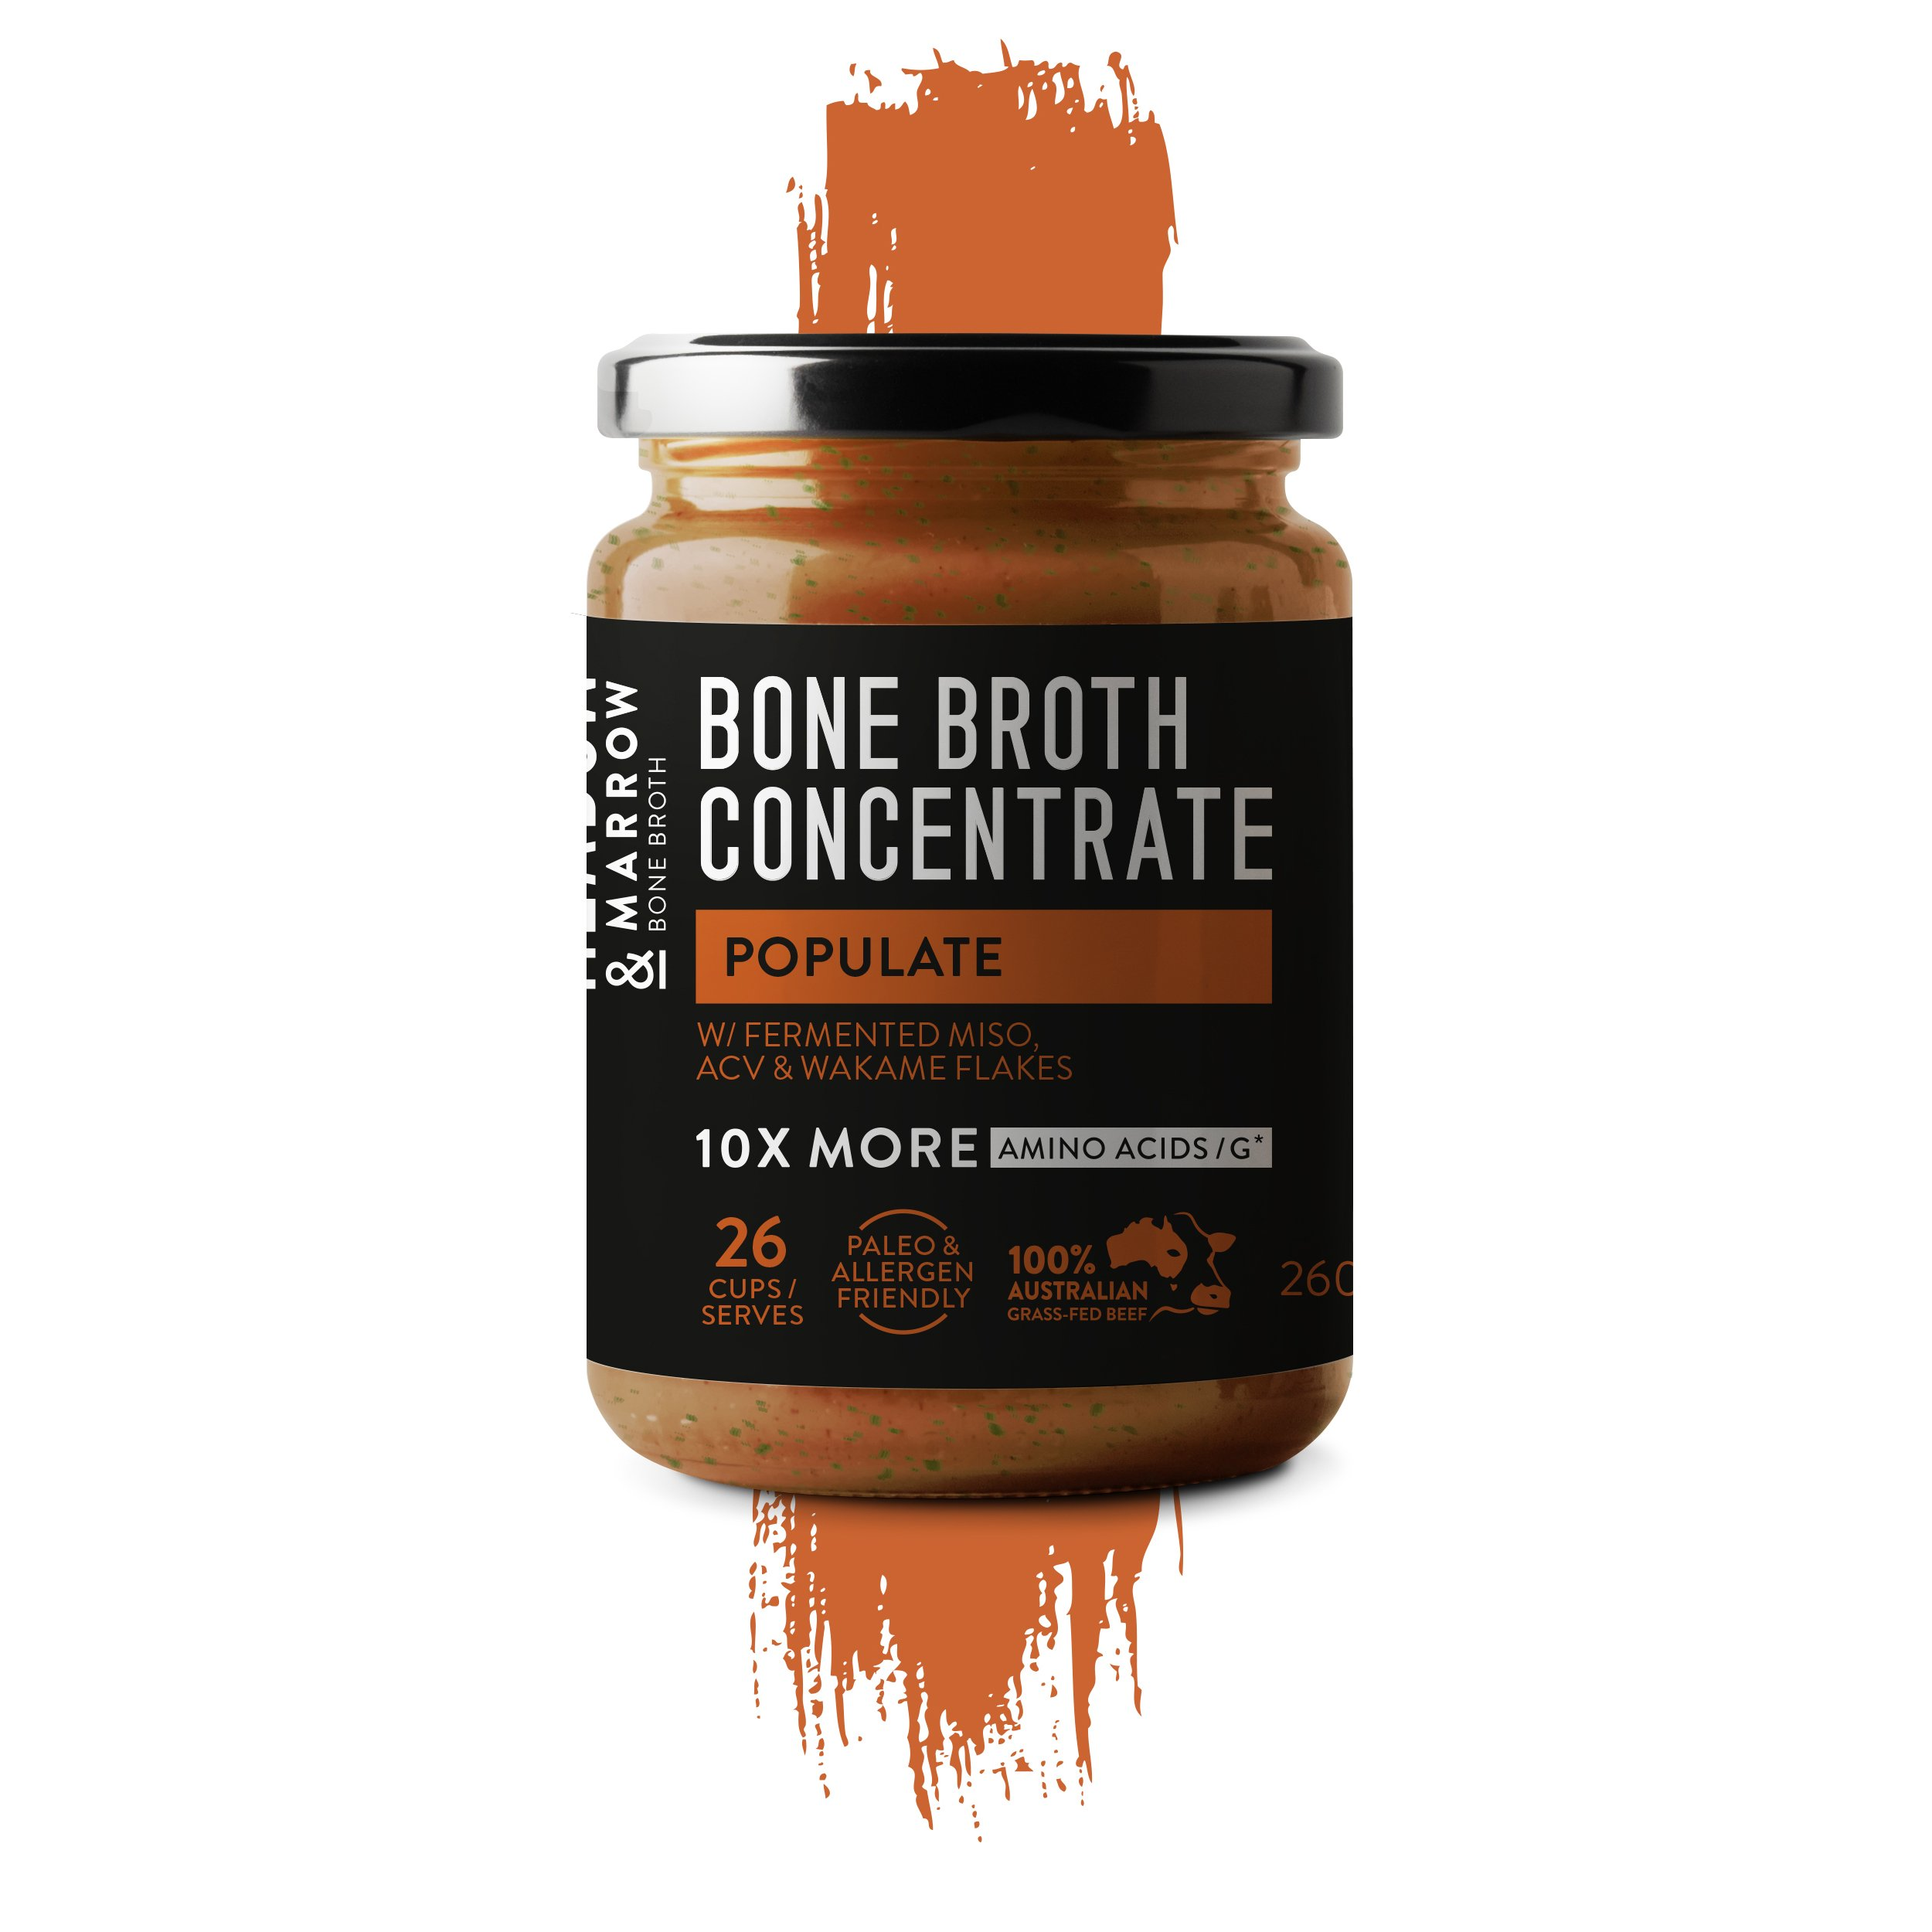 Populate - Performance Bone Broth Concentrate Range- 9.17oz Improves Digestion, Balance Gut Flora, Anti-Ageing. Traditional Miso with Apple cider vinegar & Wakame flakes.